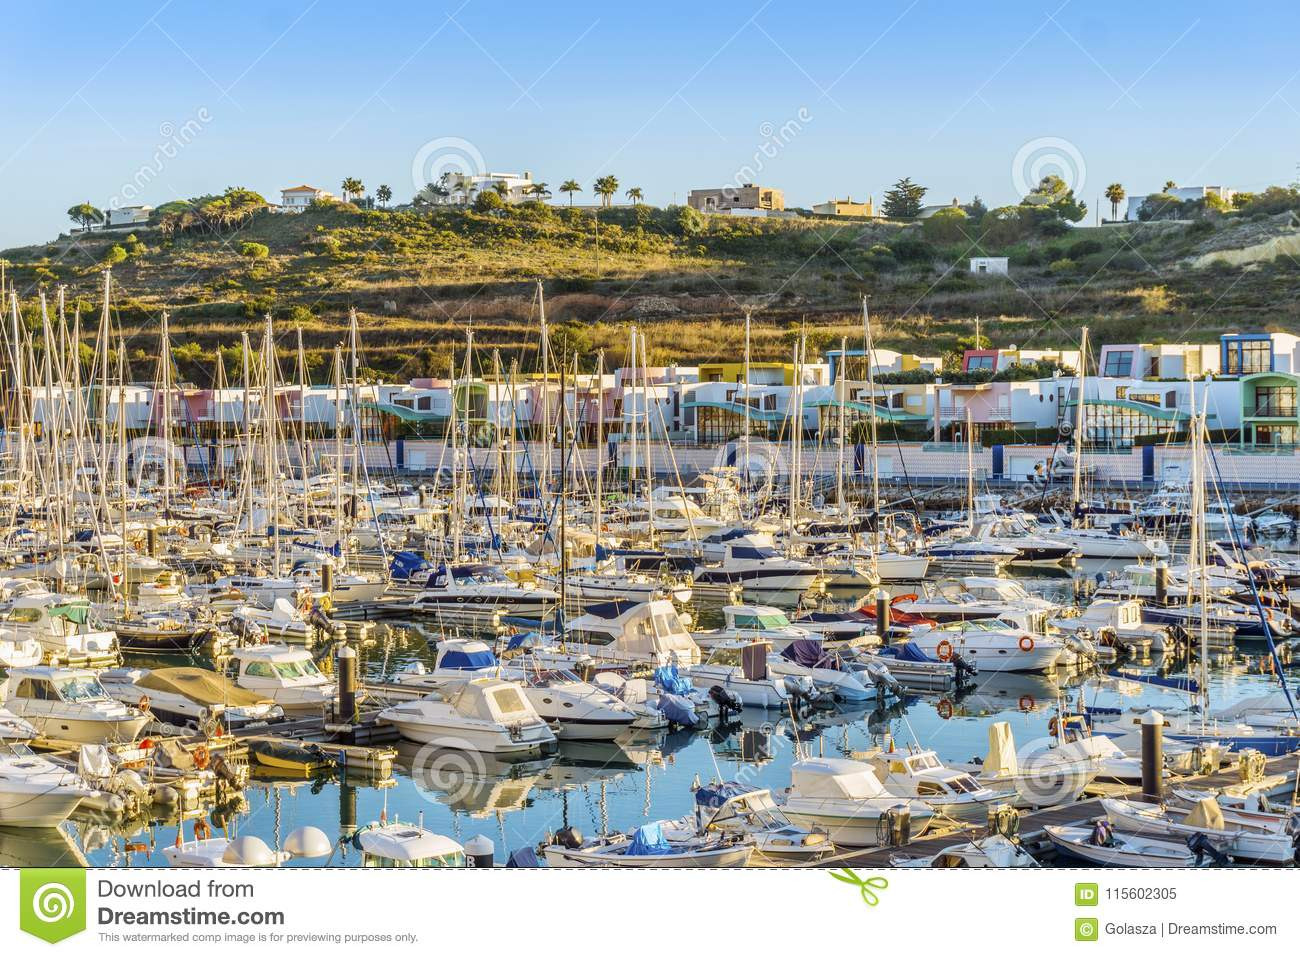 Many sailboats and motorboats in colorful marina, Albufeira, Algarve, Portugal